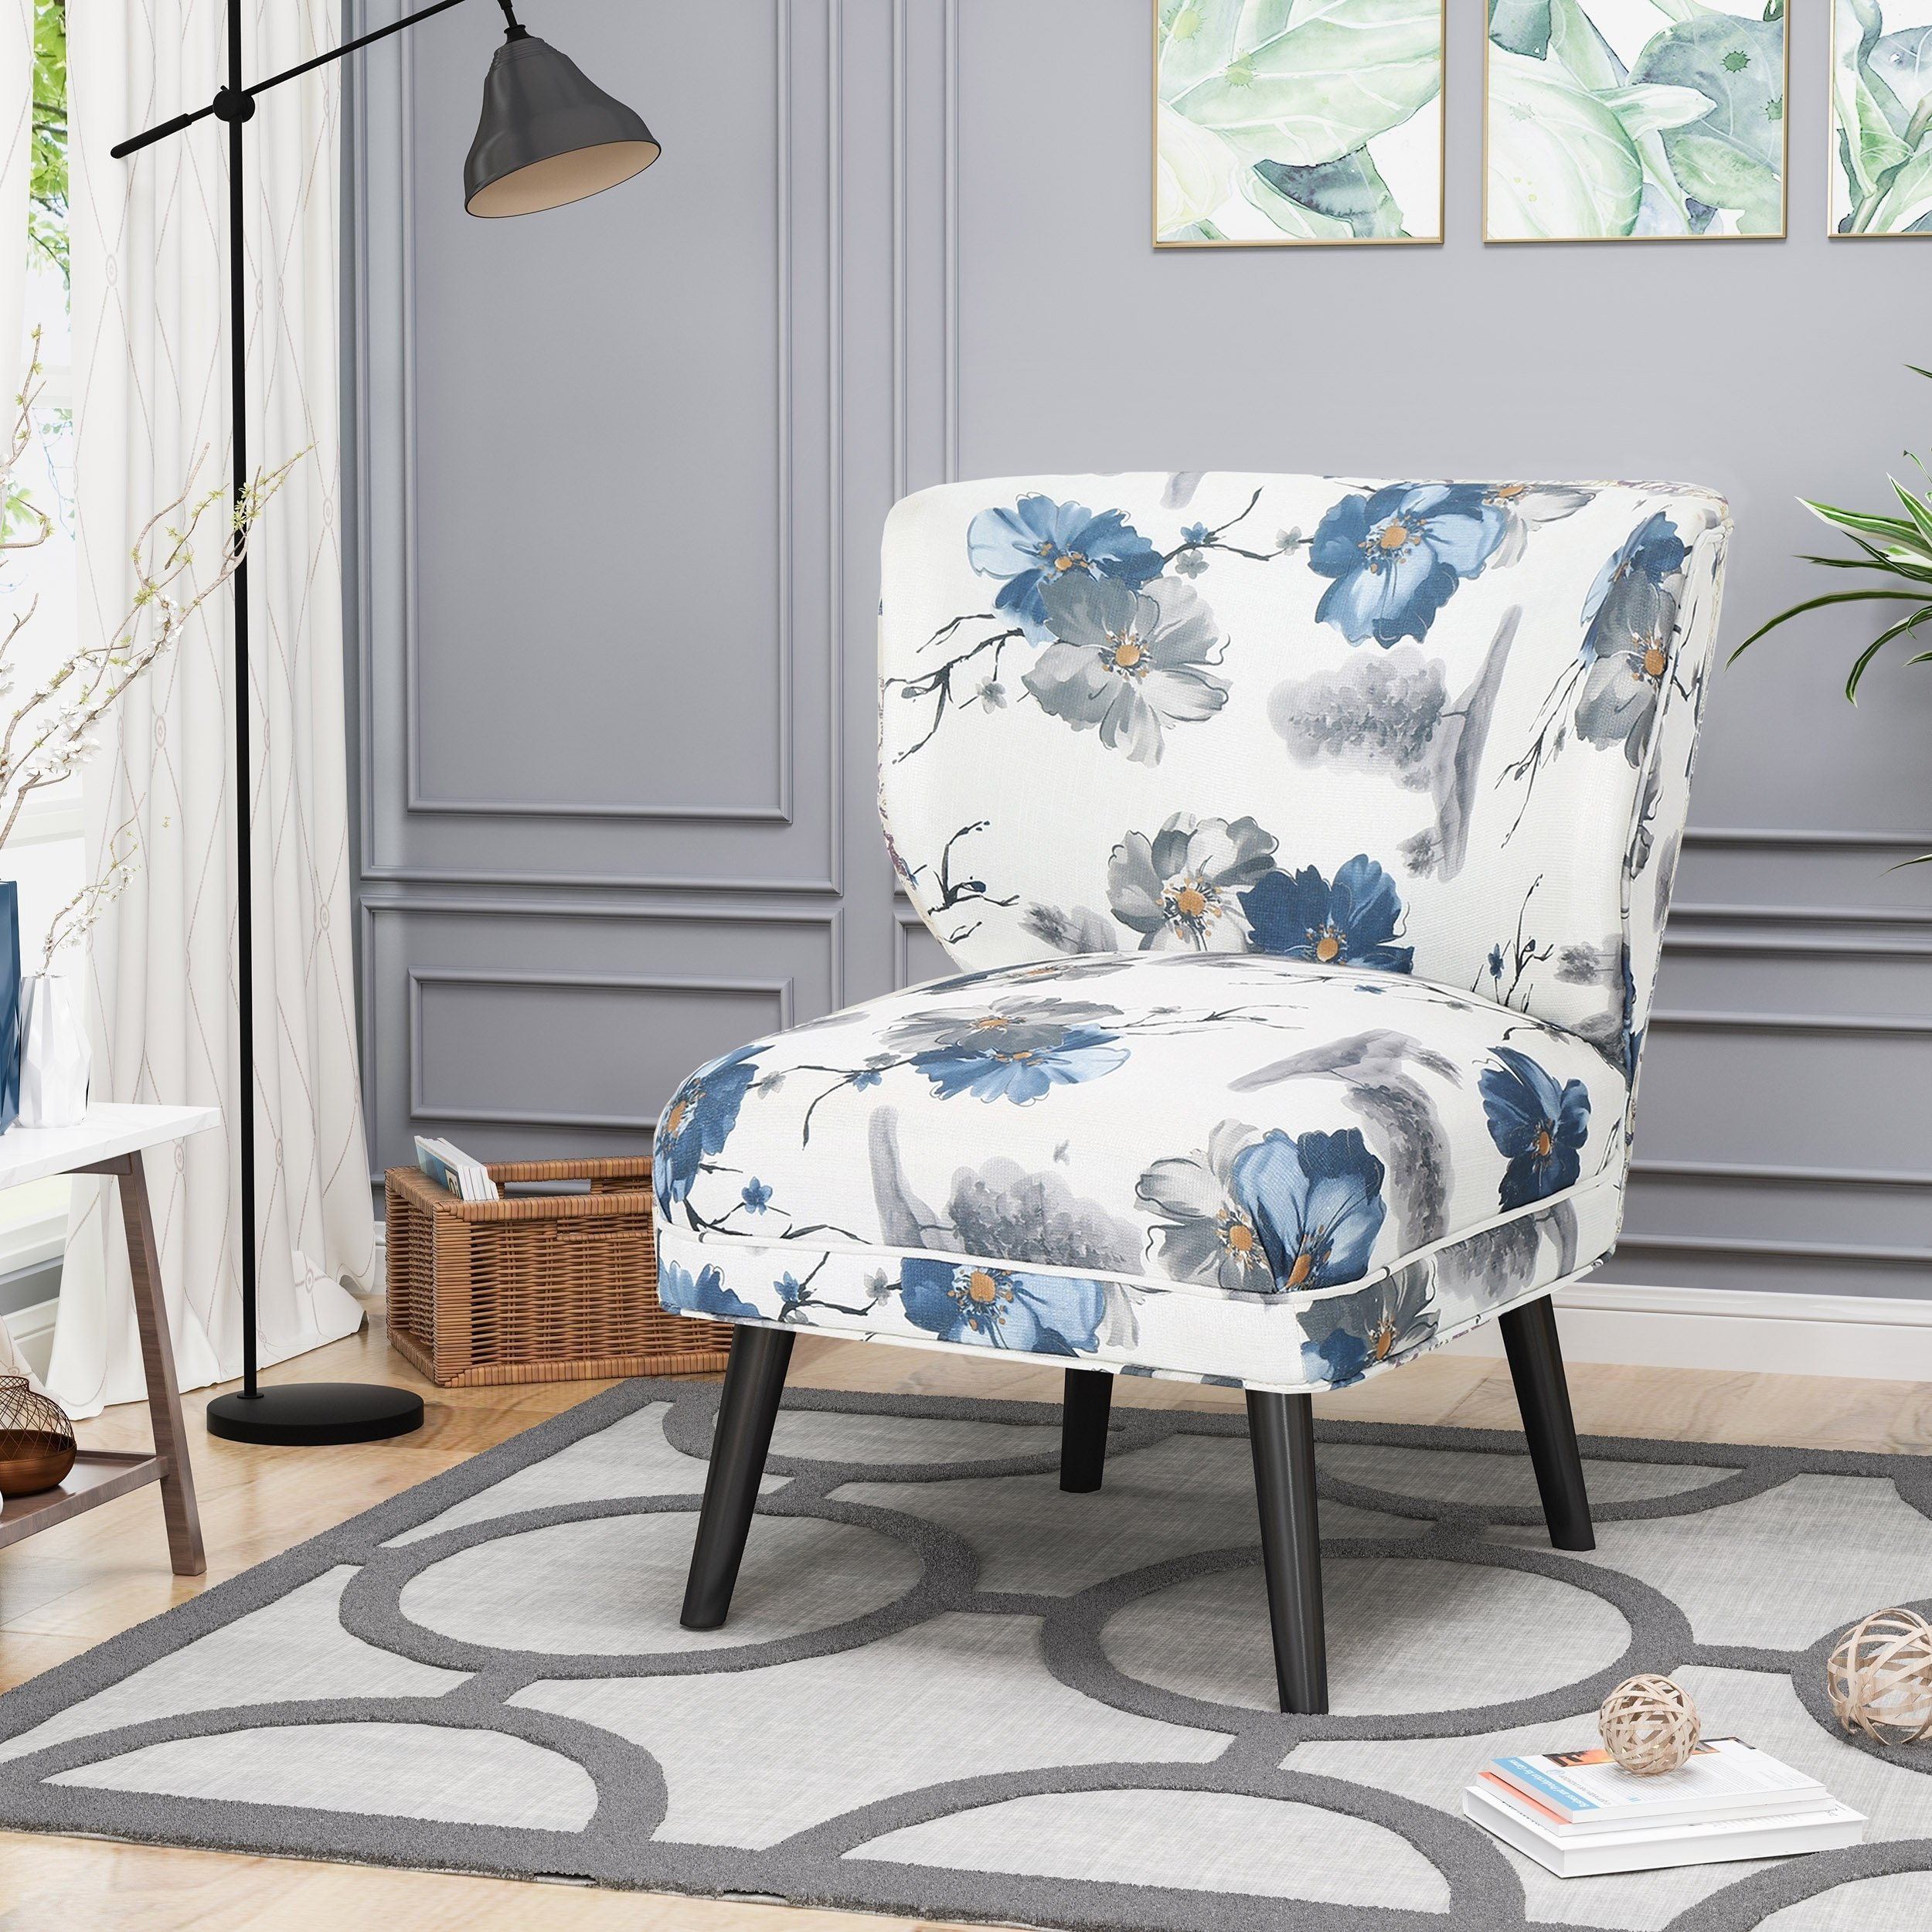 laurier modern farmhouse accent chair chirstopher knight home table free shipping today sauder dresser half moon with storage nautical dining room chandelier wood coffee set